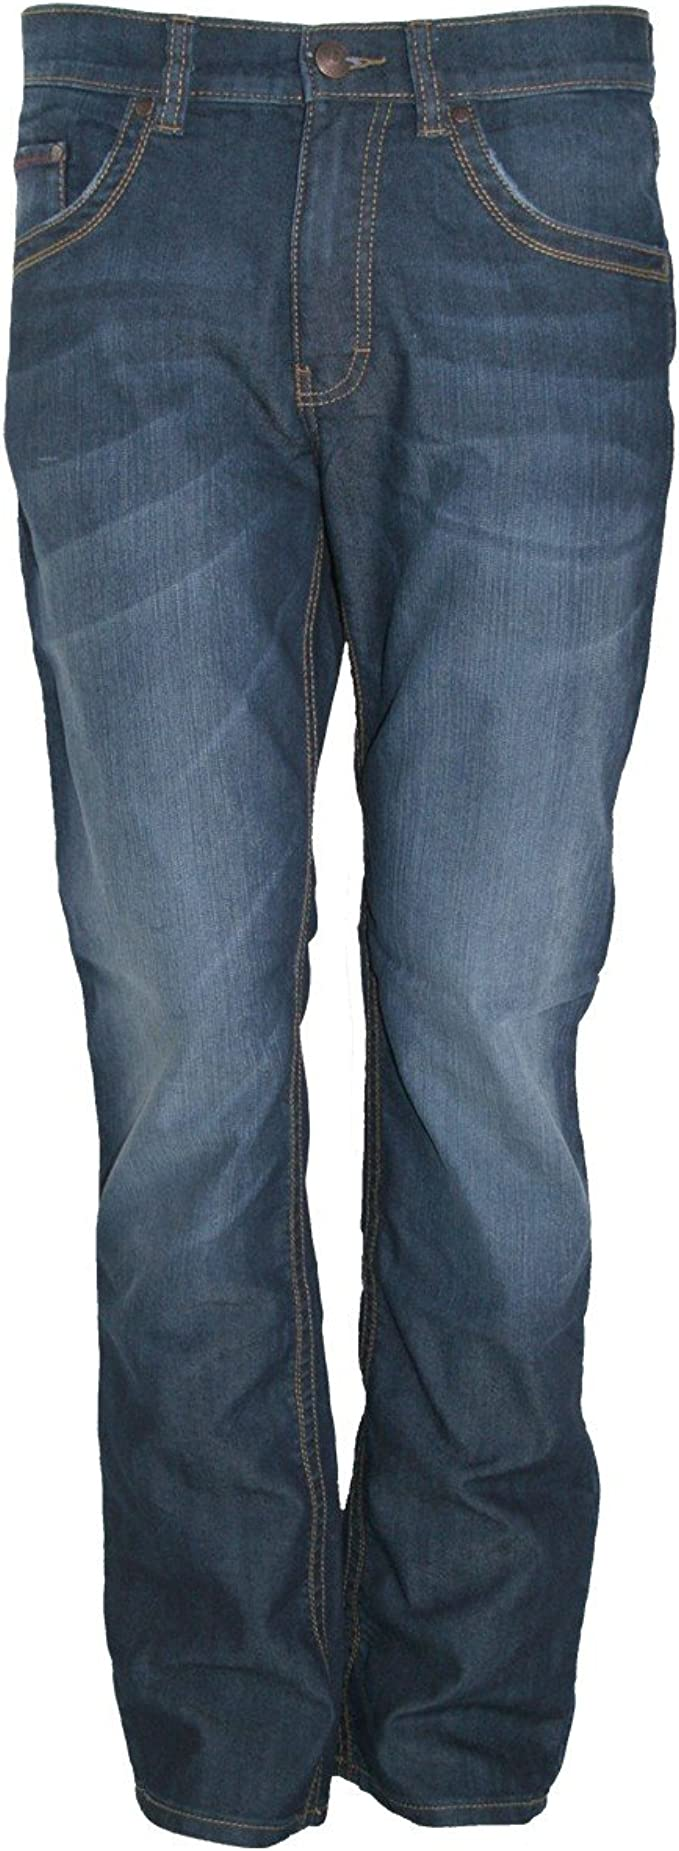 Paddocks Jeans Paddock/'s Carter 5718 blue black moustache used auch extra lang